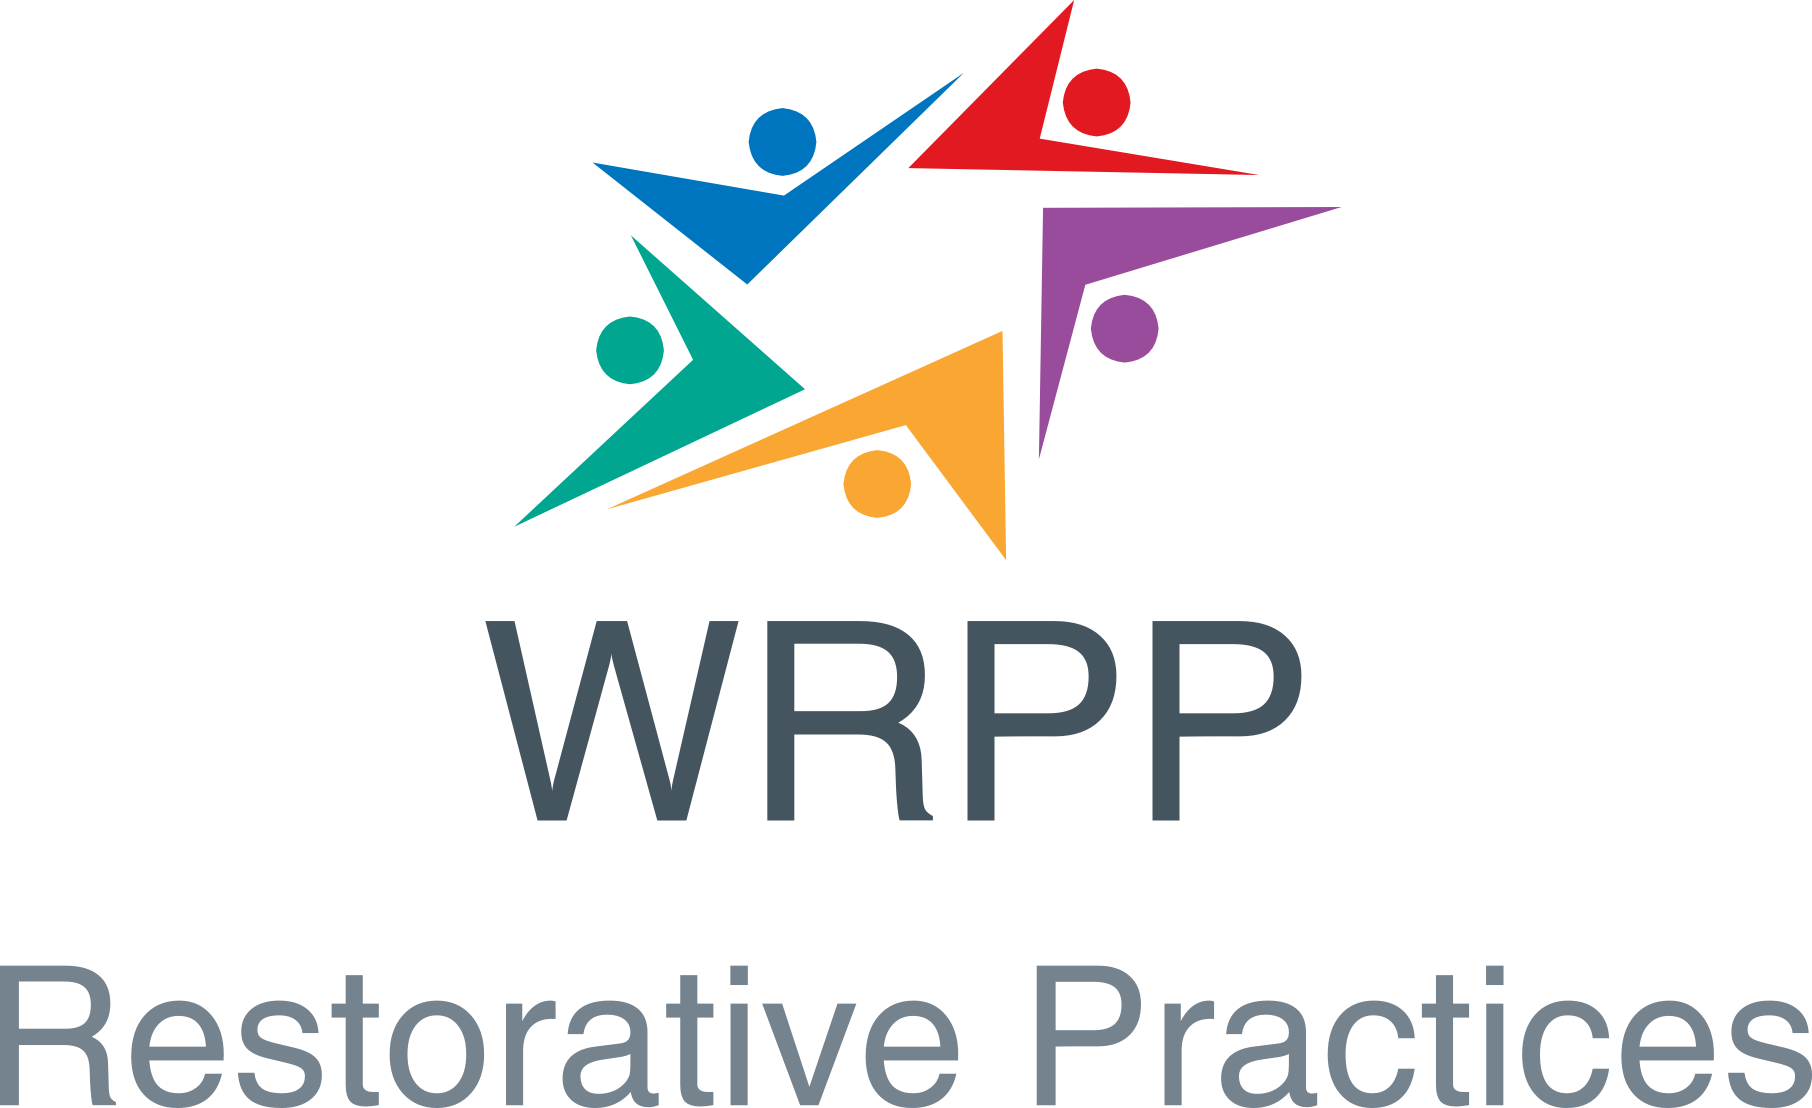 Wexford Restorative Practices Partnership